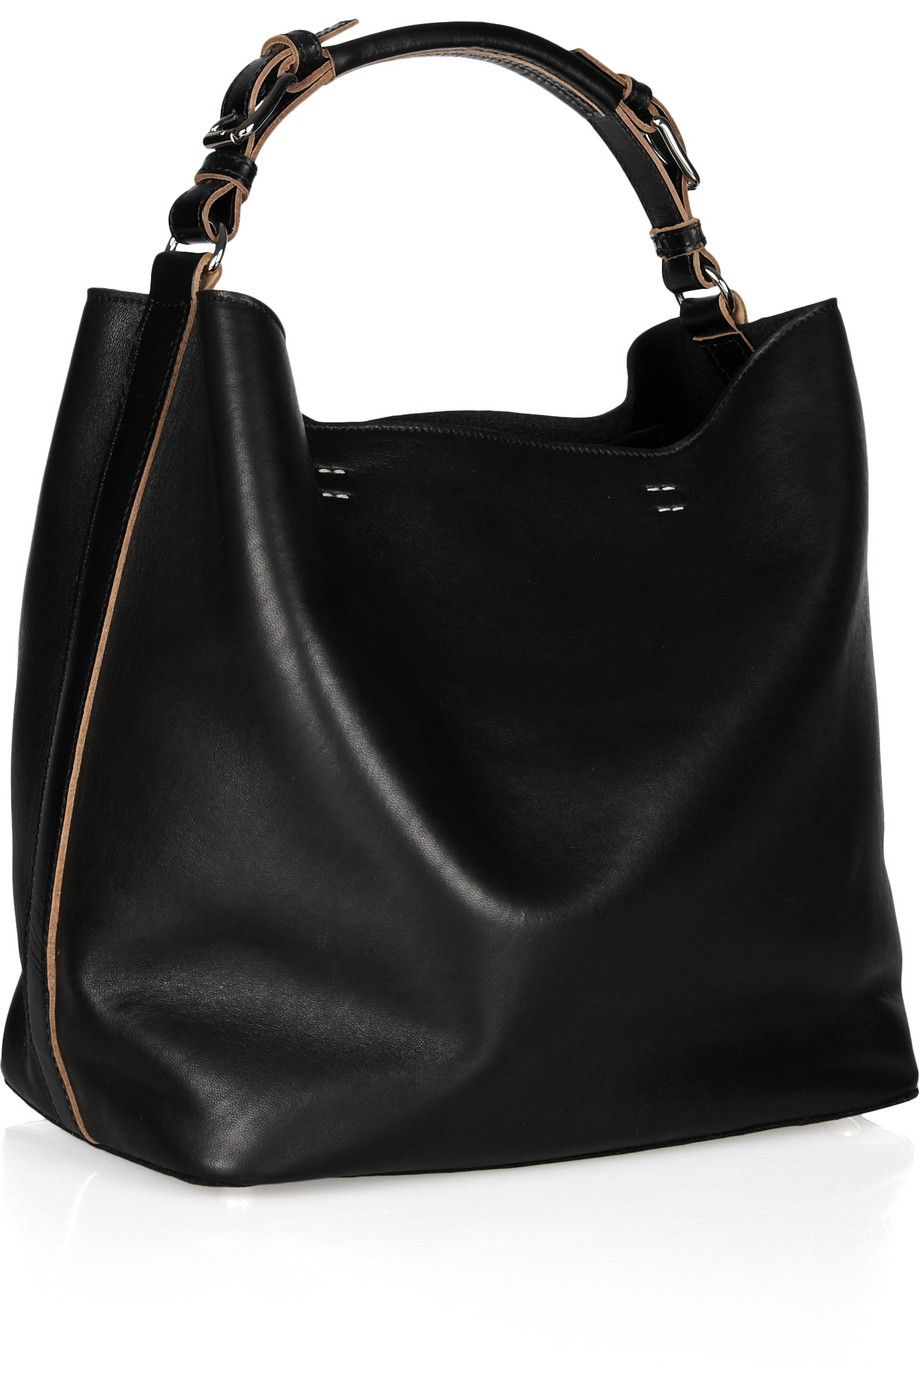 Marni Shoulder Bag for Women, Black, Leather, 2017, one size